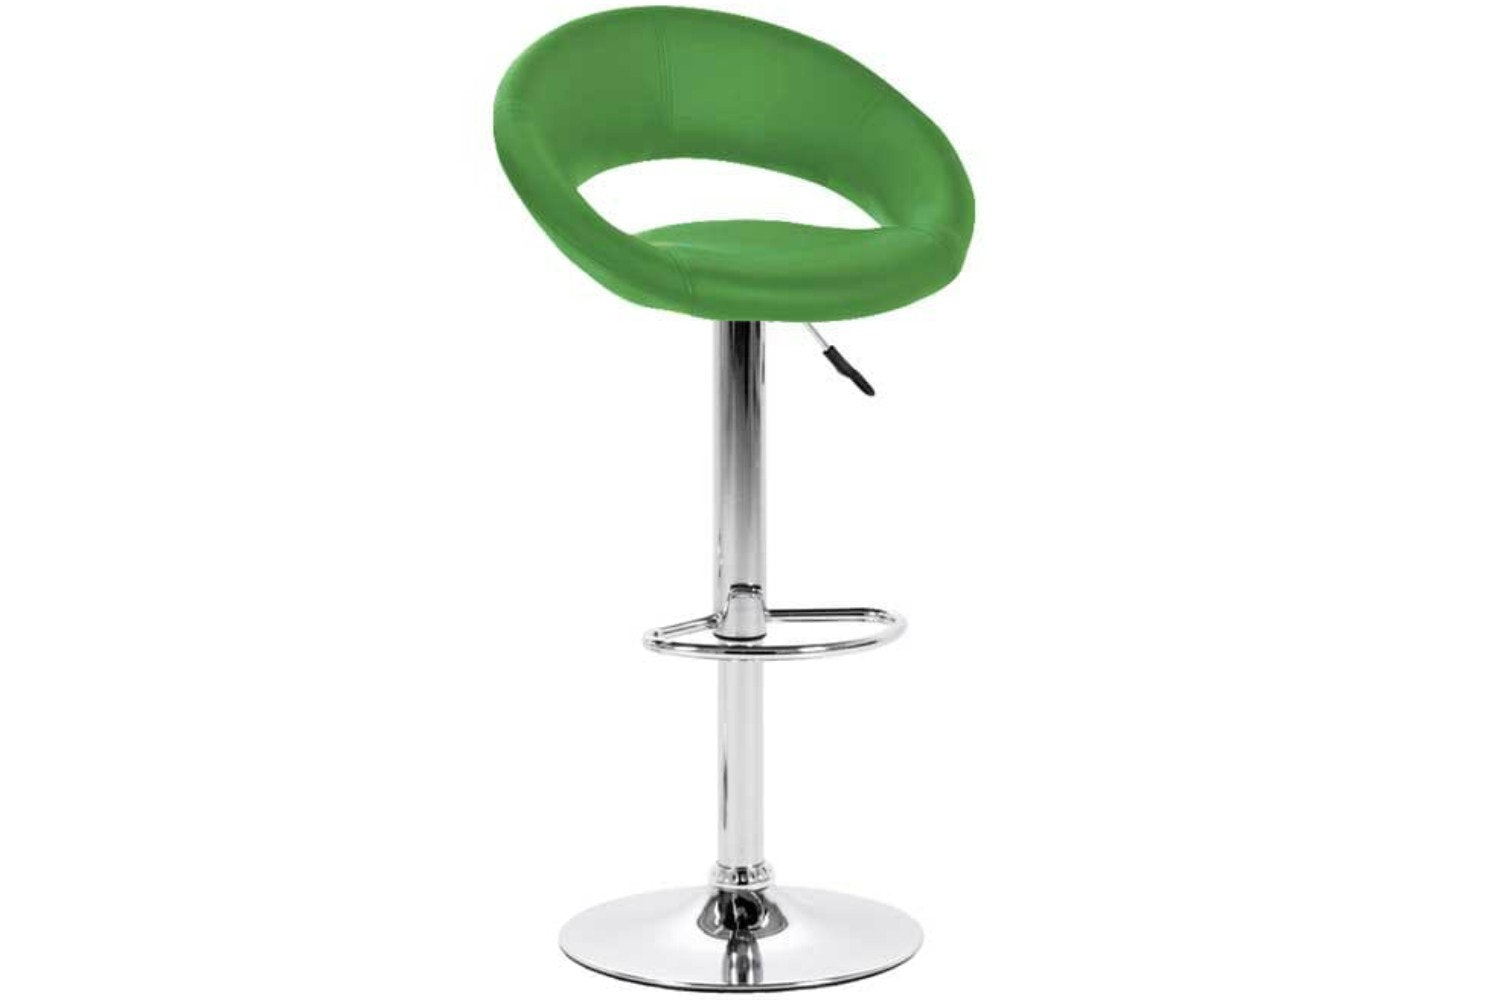 Plump Bar Stool Green